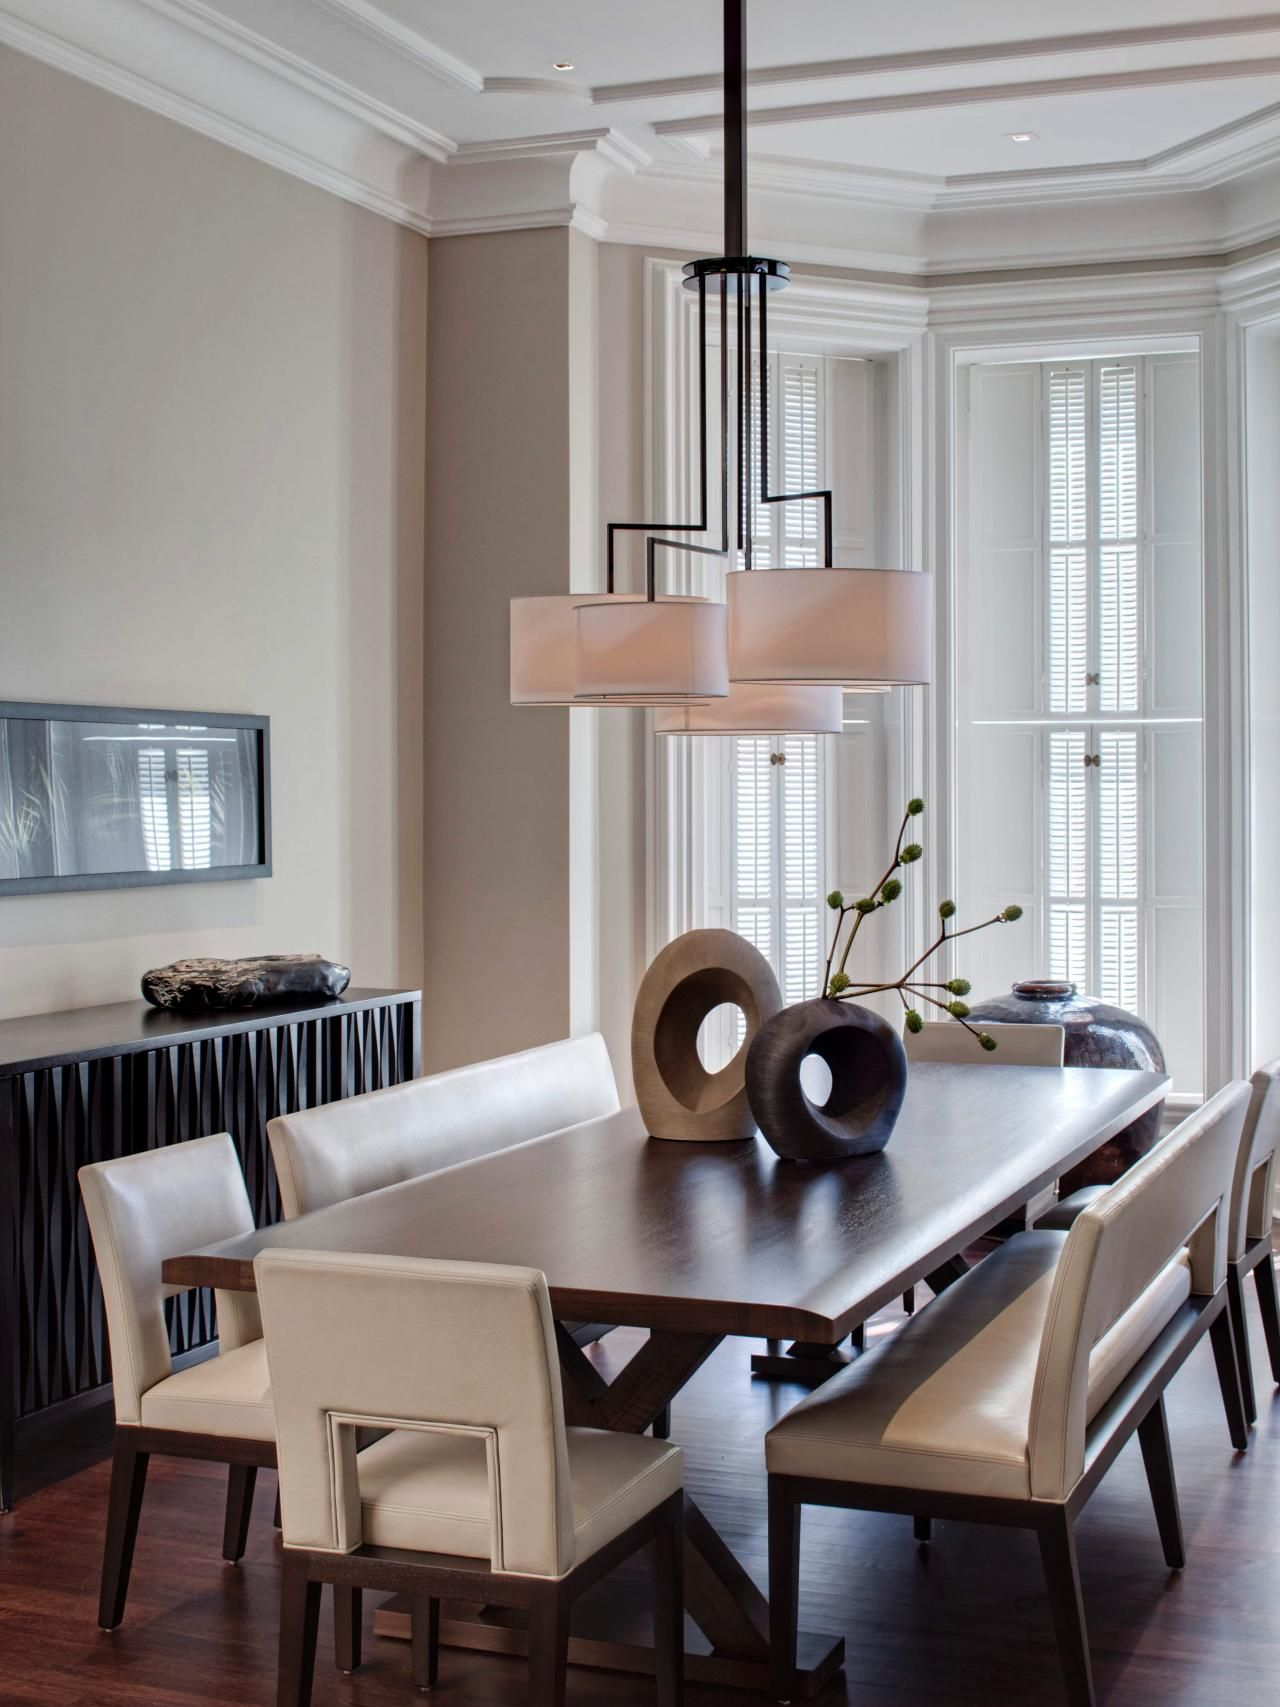 6 Dining Room Trends To Try  Hgtv Room Decorating Ideas And Impressive White Dining Room Bench Decorating Inspiration